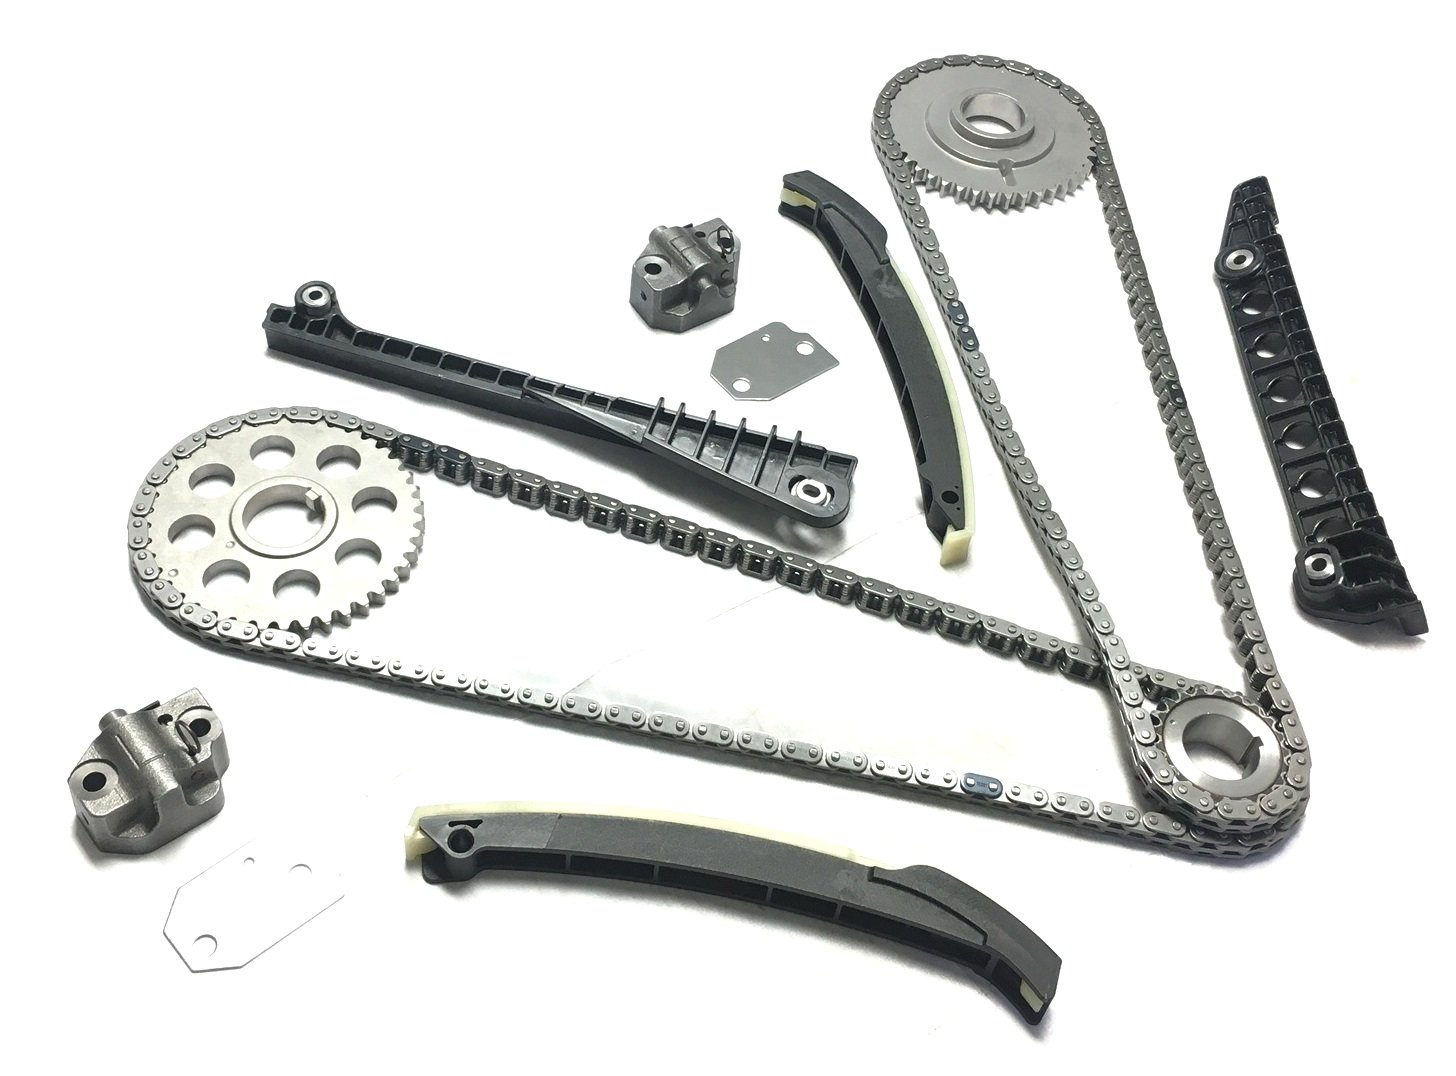 Diamond Power Timing Chain Kit Works With Ford Expedition Navigator 5 4l V8 Sohc 16v Triton 97 00